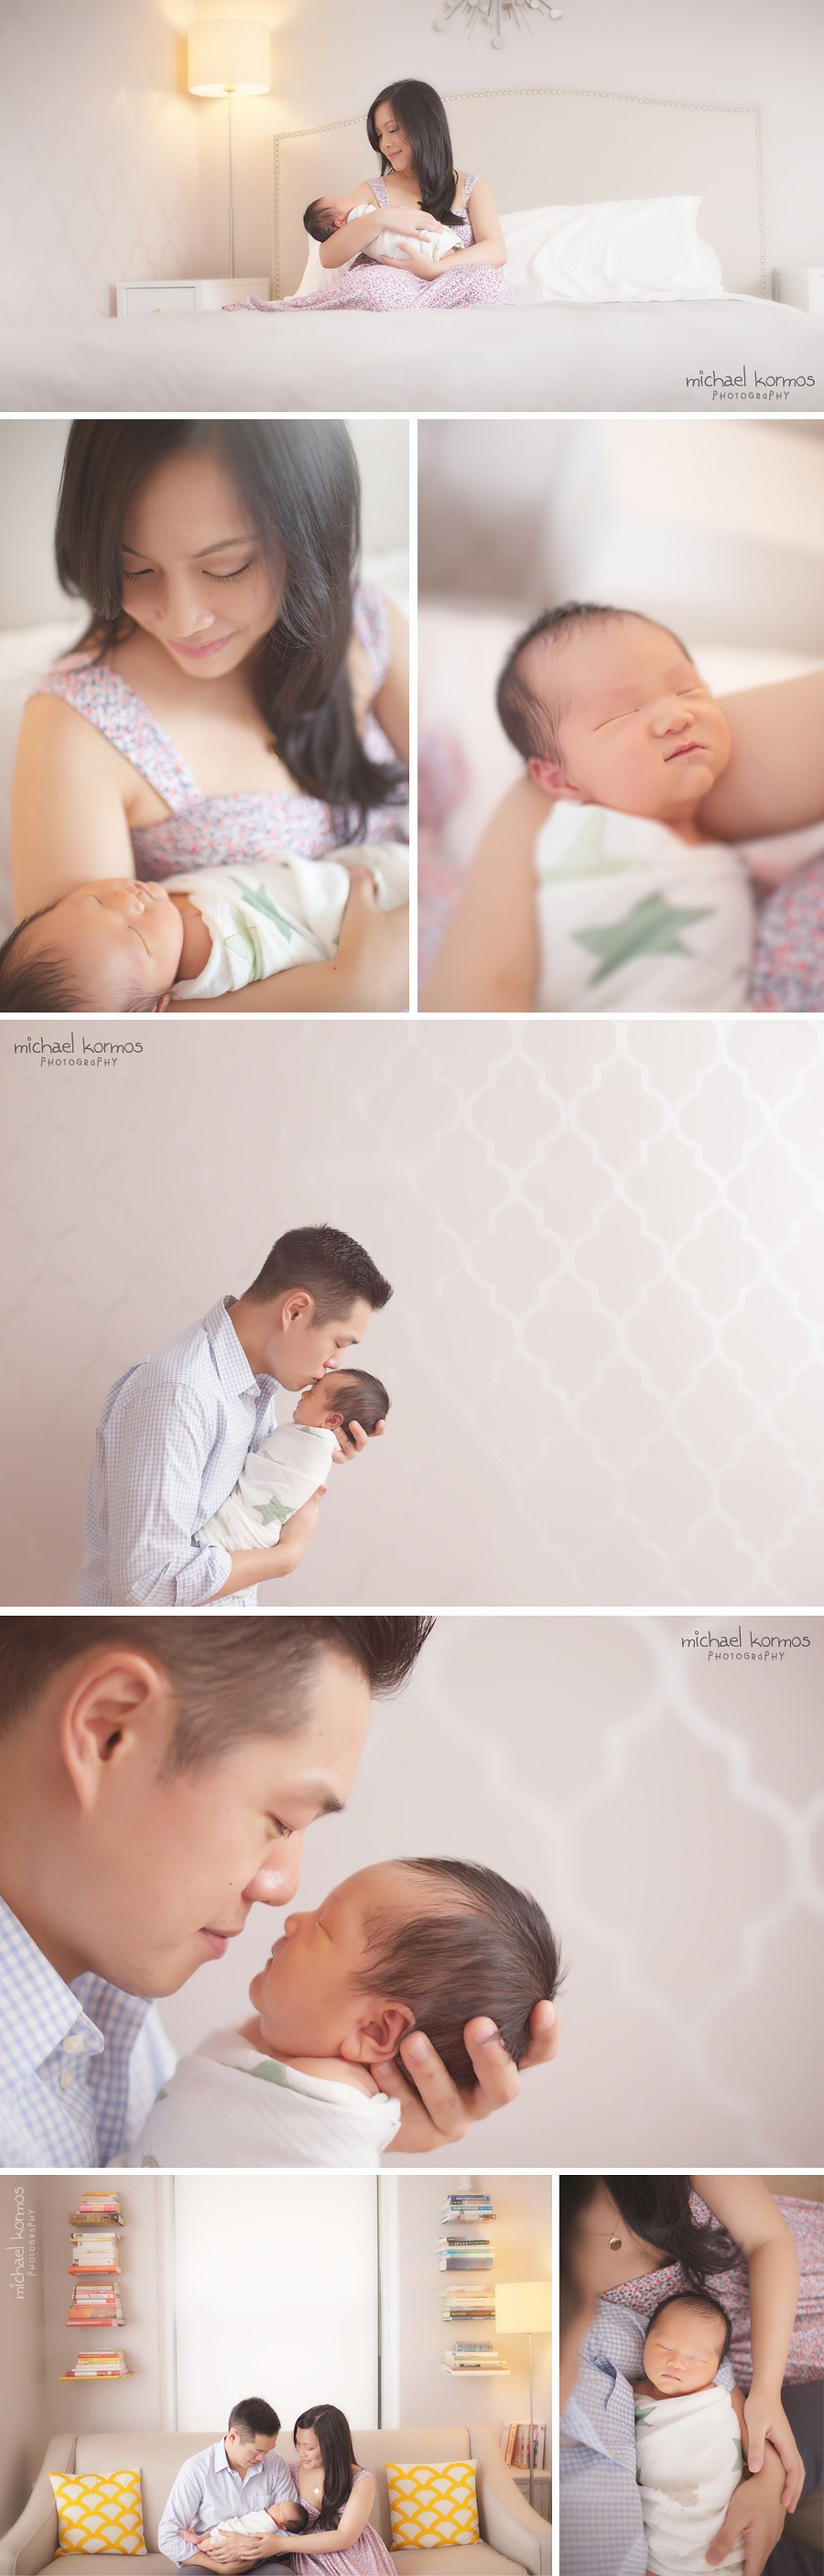 modern lifestyle session to capture meaningful newborn and family photography